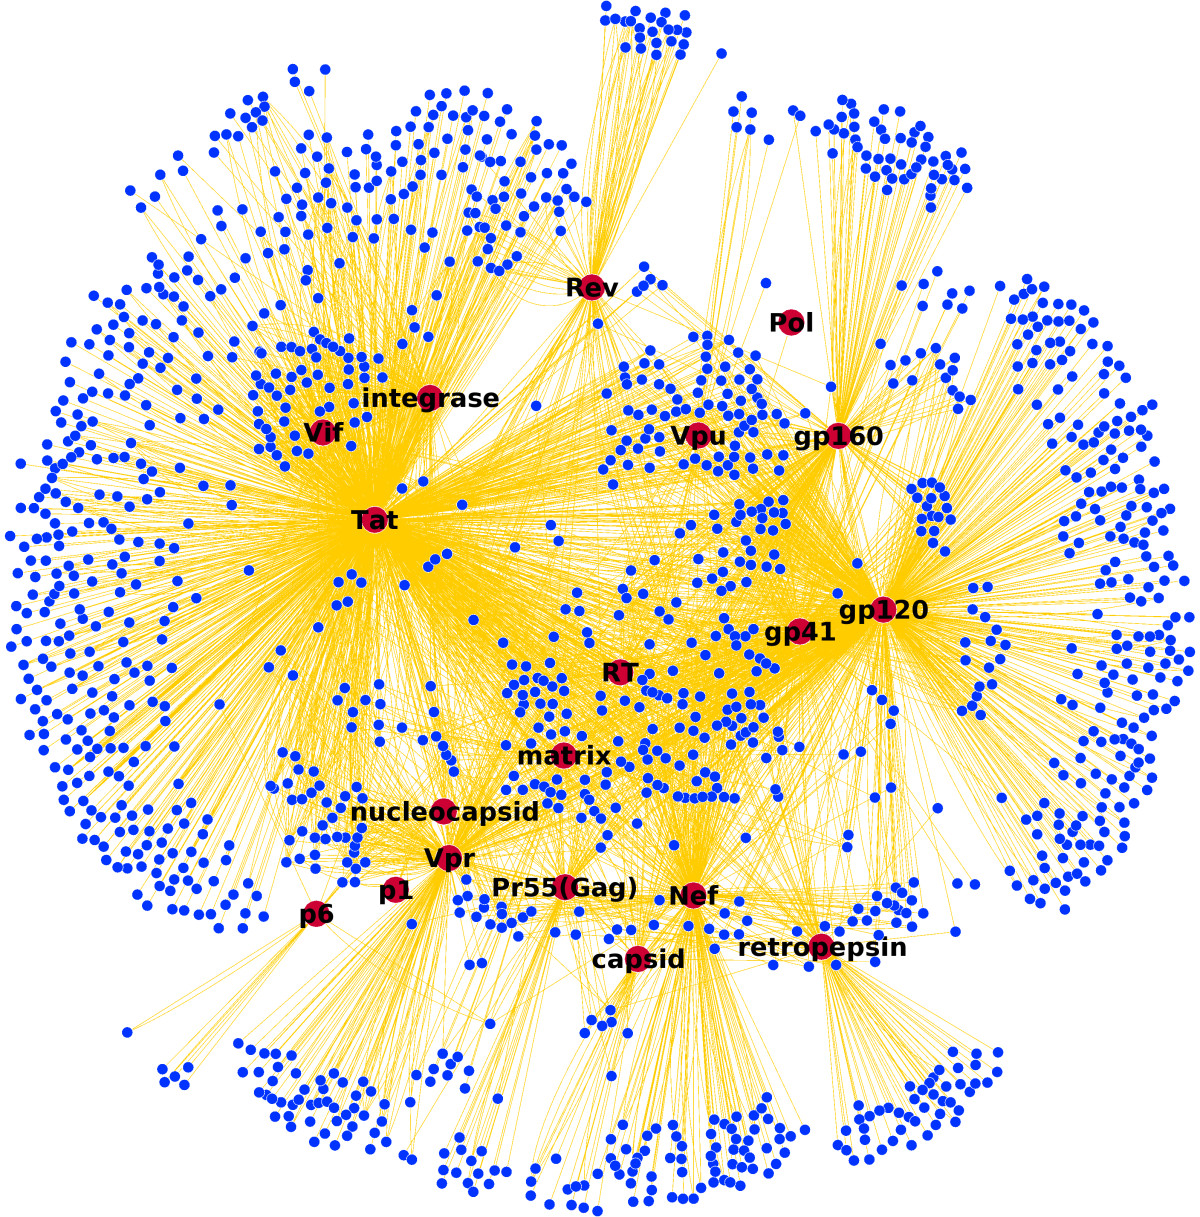 http://static-content.springer.com/image/art%3A10.1186%2F1752-0509-4-96/MediaObjects/12918_2010_Article_485_Fig1_HTML.jpg